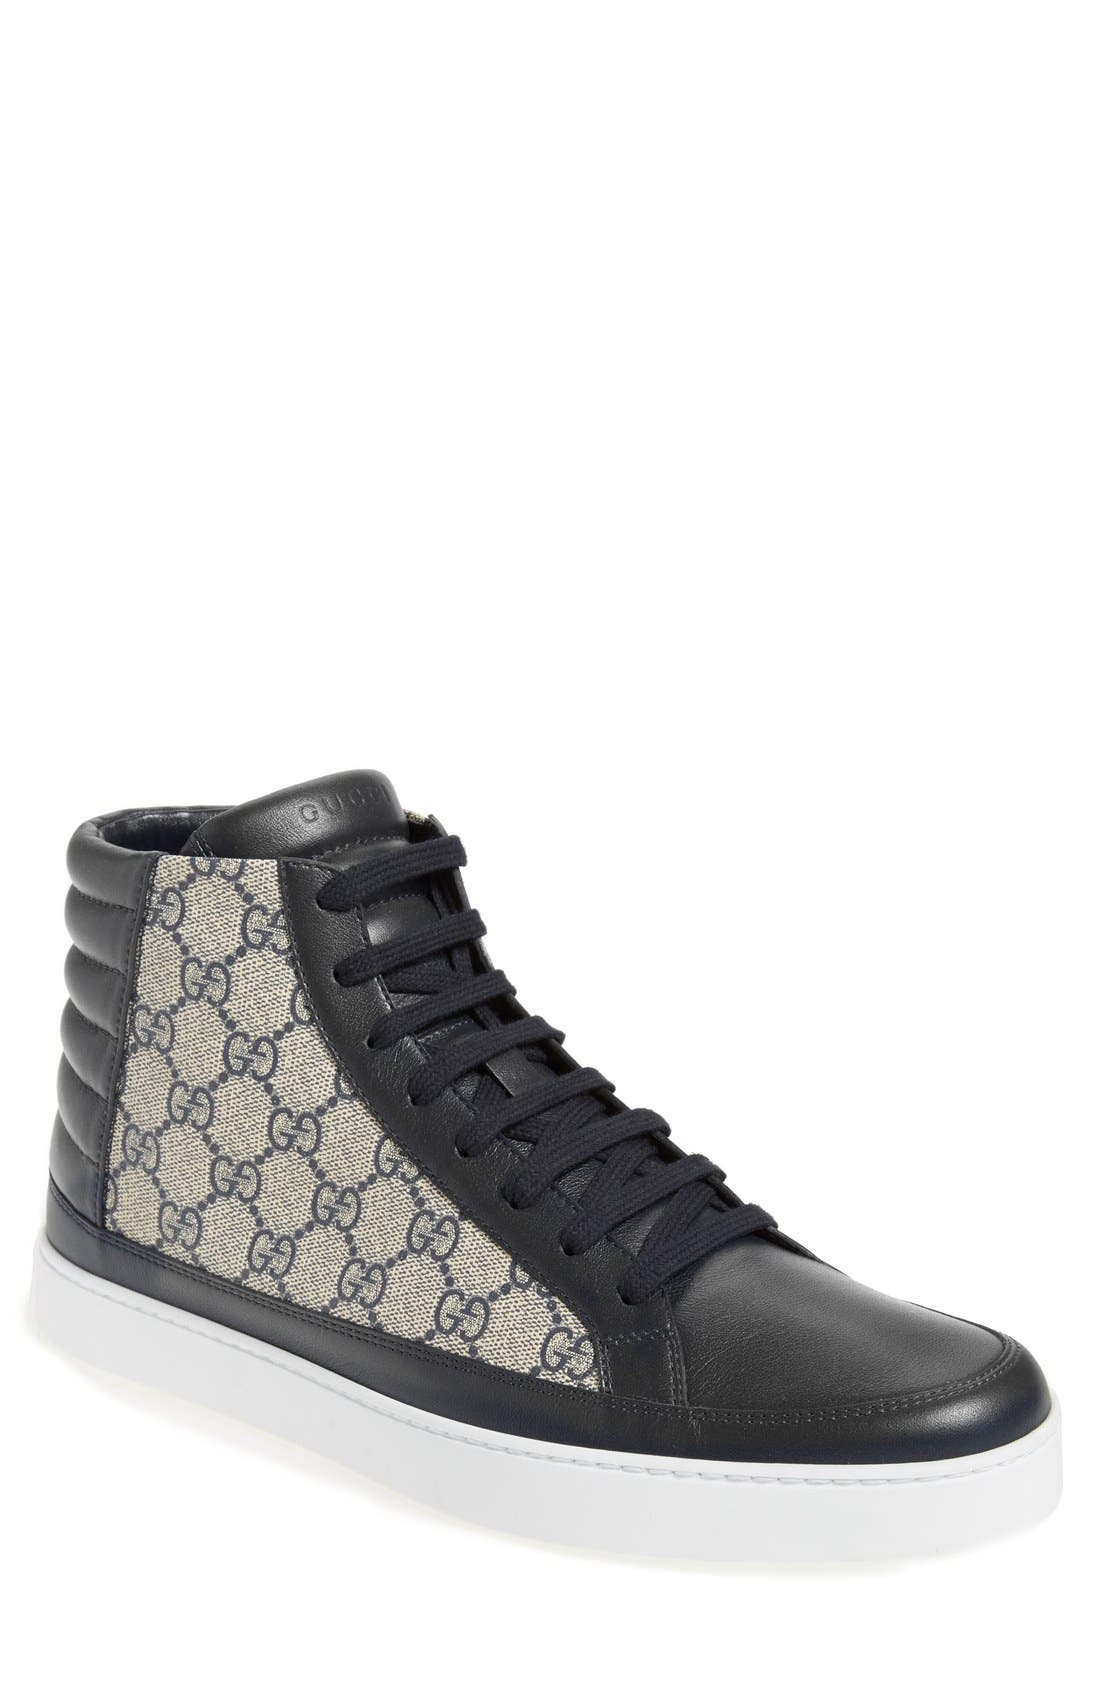 Alternate Image 1 Selected - Gucci 'Common' High Top Sneaker (Men)